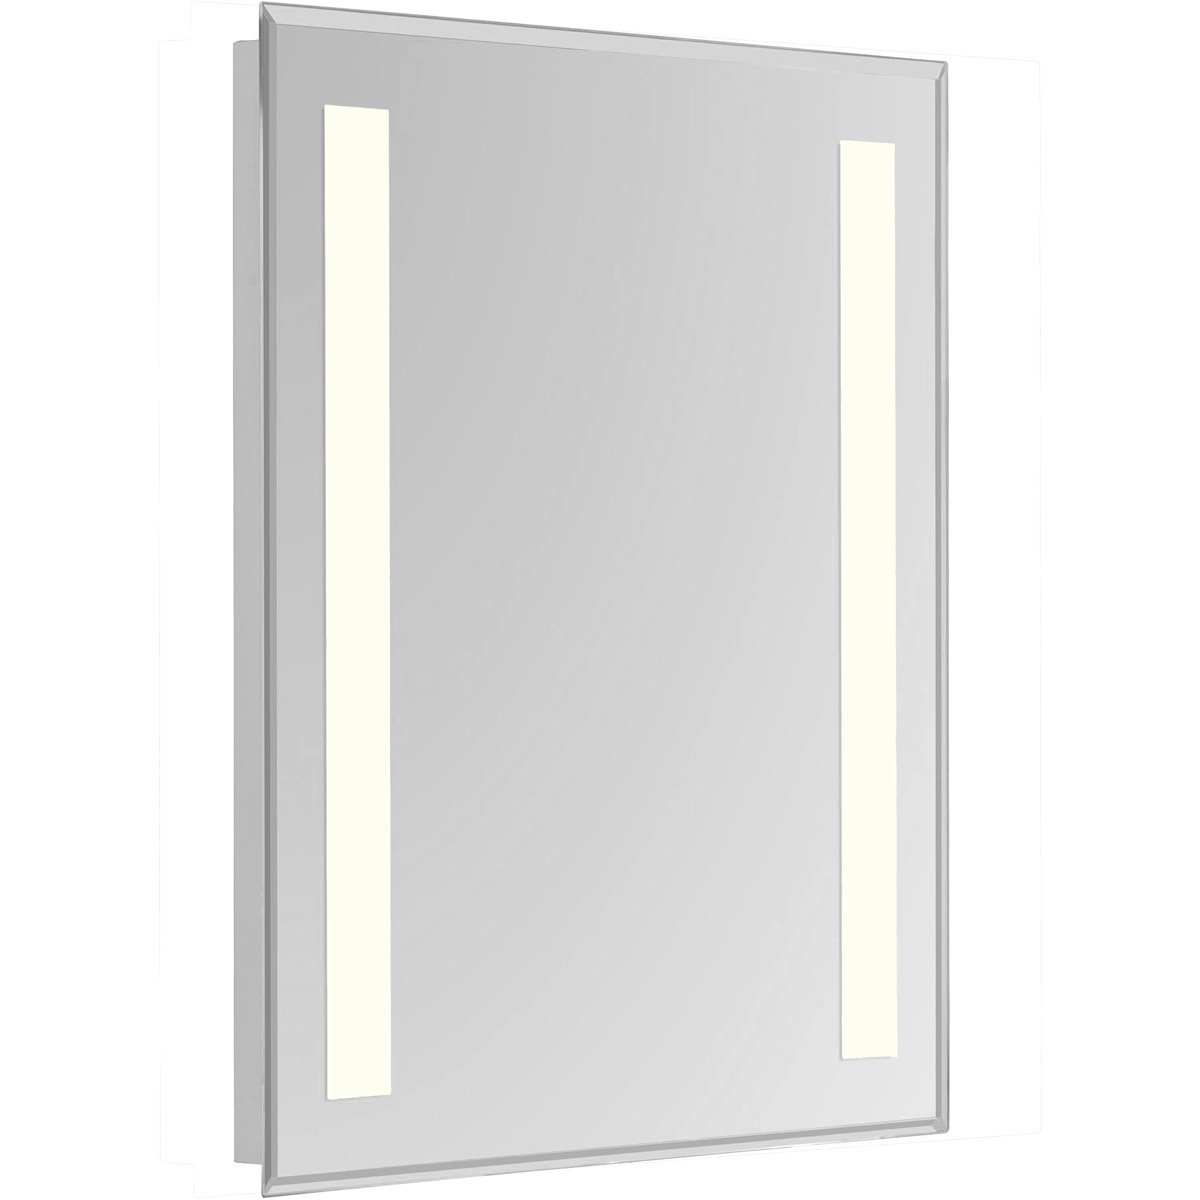 Nova 40 X 20 Hardwired Glossy White Led Wall Mirror (Mre-6312) Led Mirror